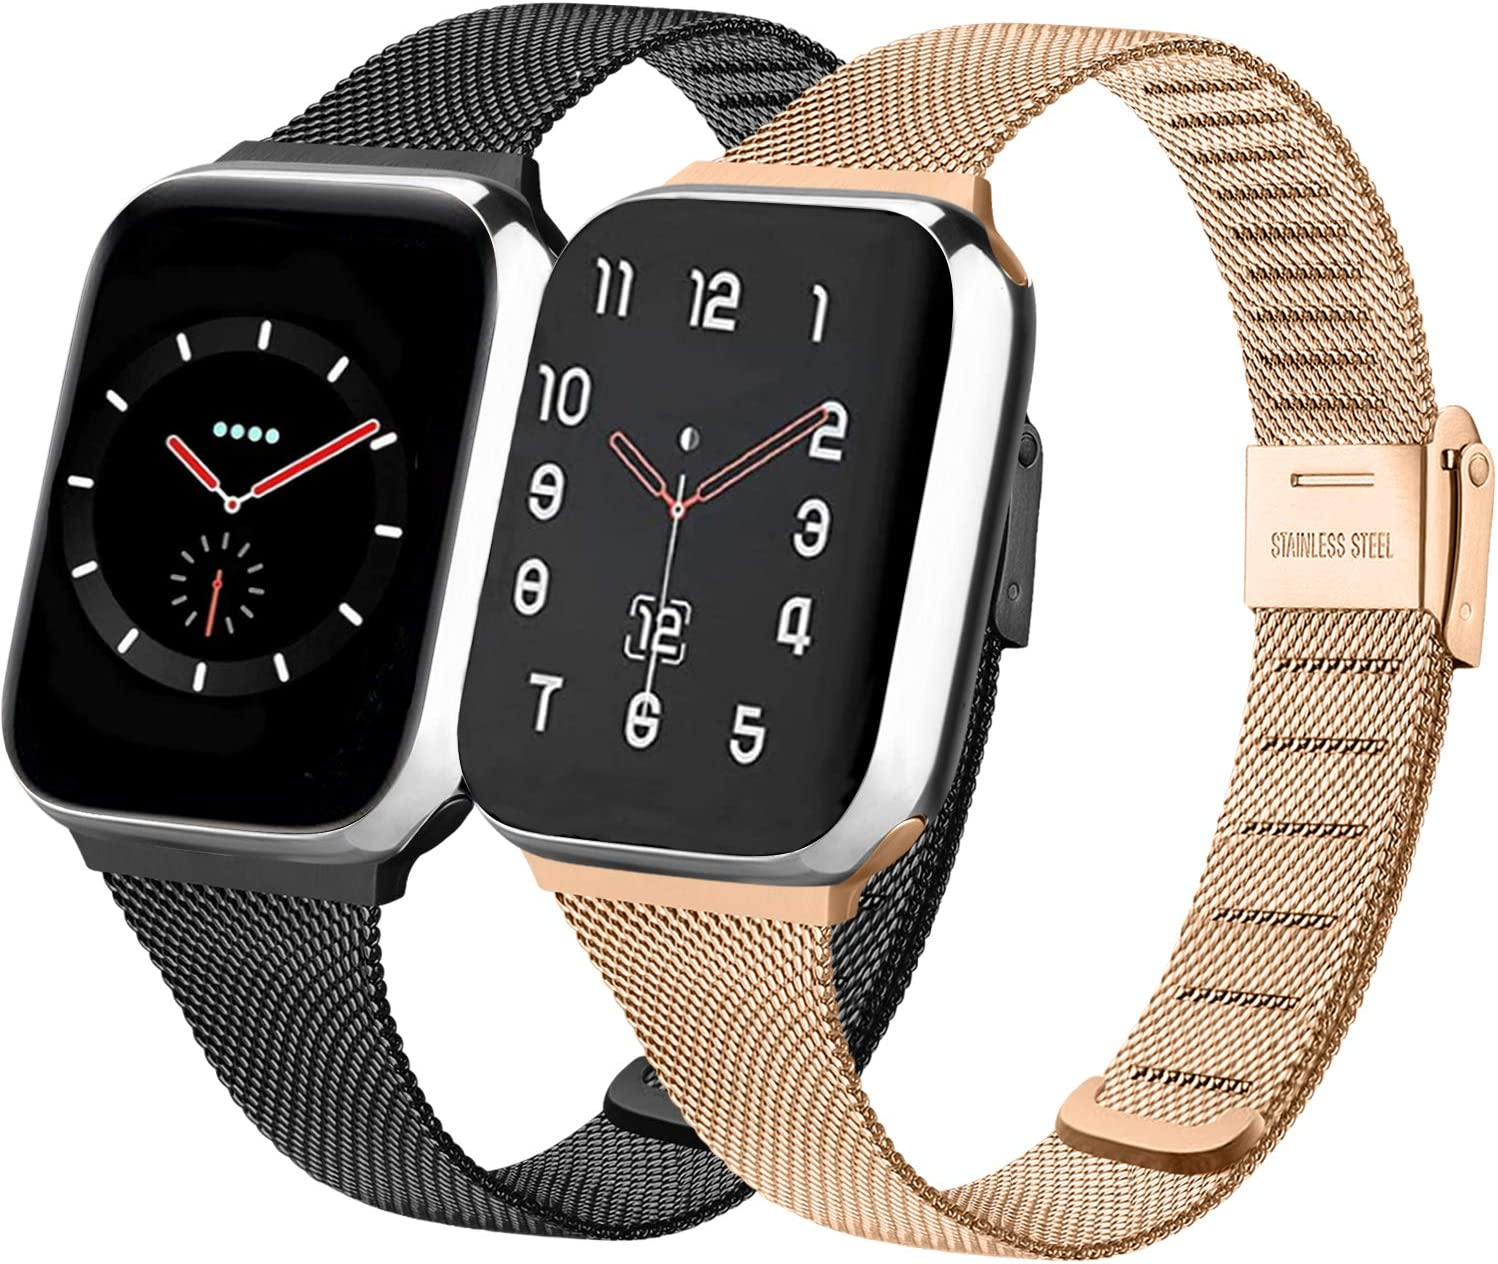 PACK 2 Metal Band Compatible with Apple Watch 38mm 40mm 42mm 44mm,Stainless Steel Mesh Loop with Adjustable Magnetic Closure Bands Compatible for iWatch Series 5/4/3/2/1 (black+rose gold,38mm/40mm)